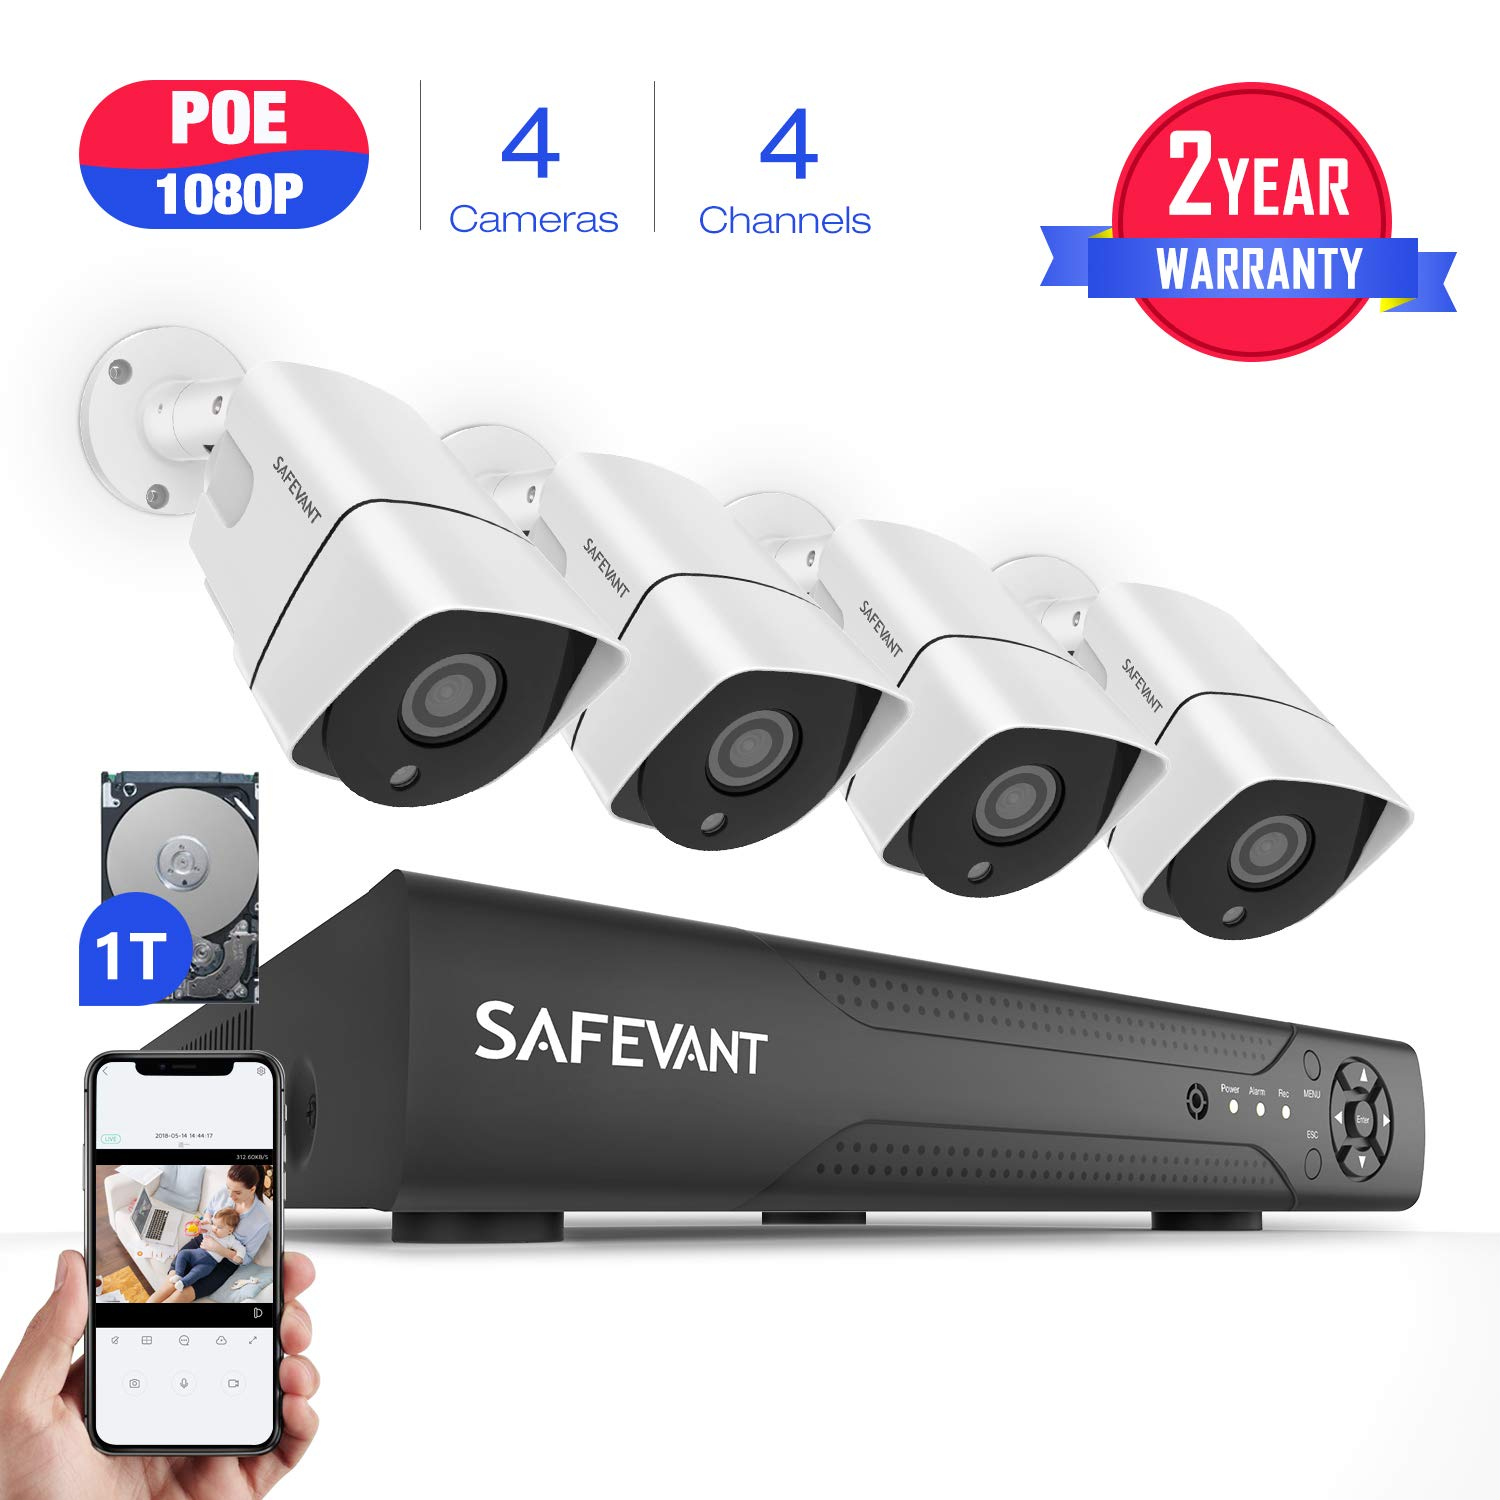 Full HD 1080P Security Camera System PoE,SAFEVANT CCTV Camera Security System with 4pcs Indoor Outdoor 2MP IP Cameras with 1TB Hard Drive for 7 24 Recording